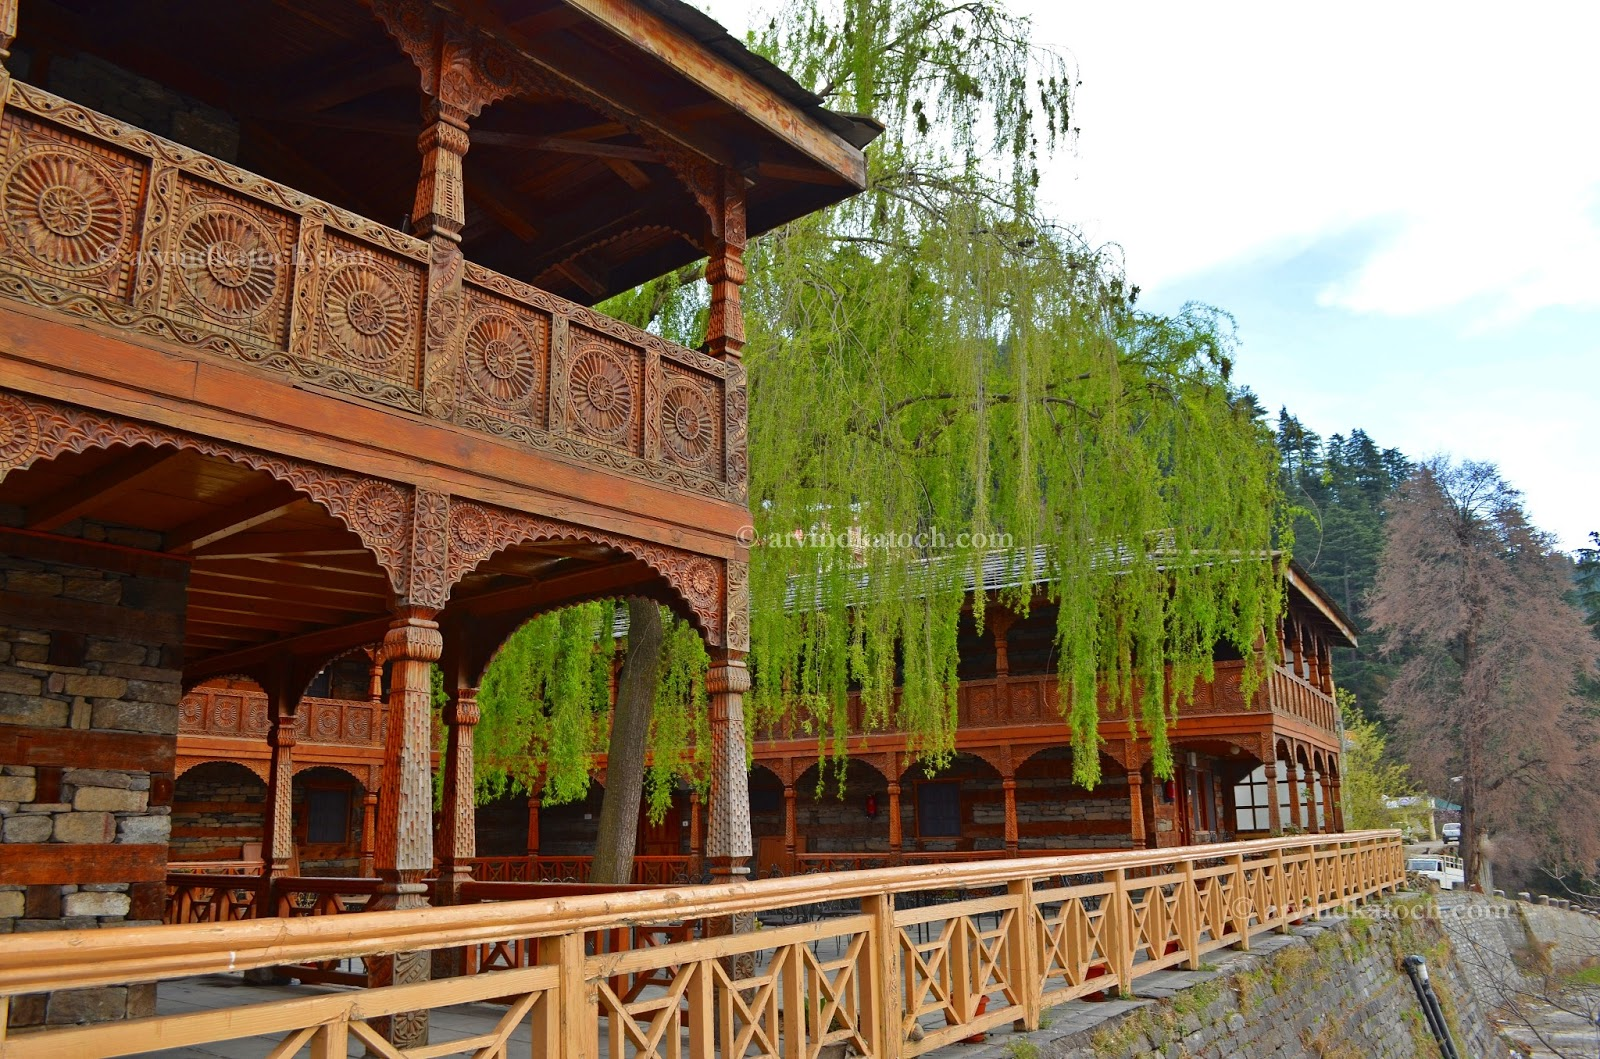 Arvind Katoch Photography Hd Pic Of Beautiful And Historical Naggar Castle Front View